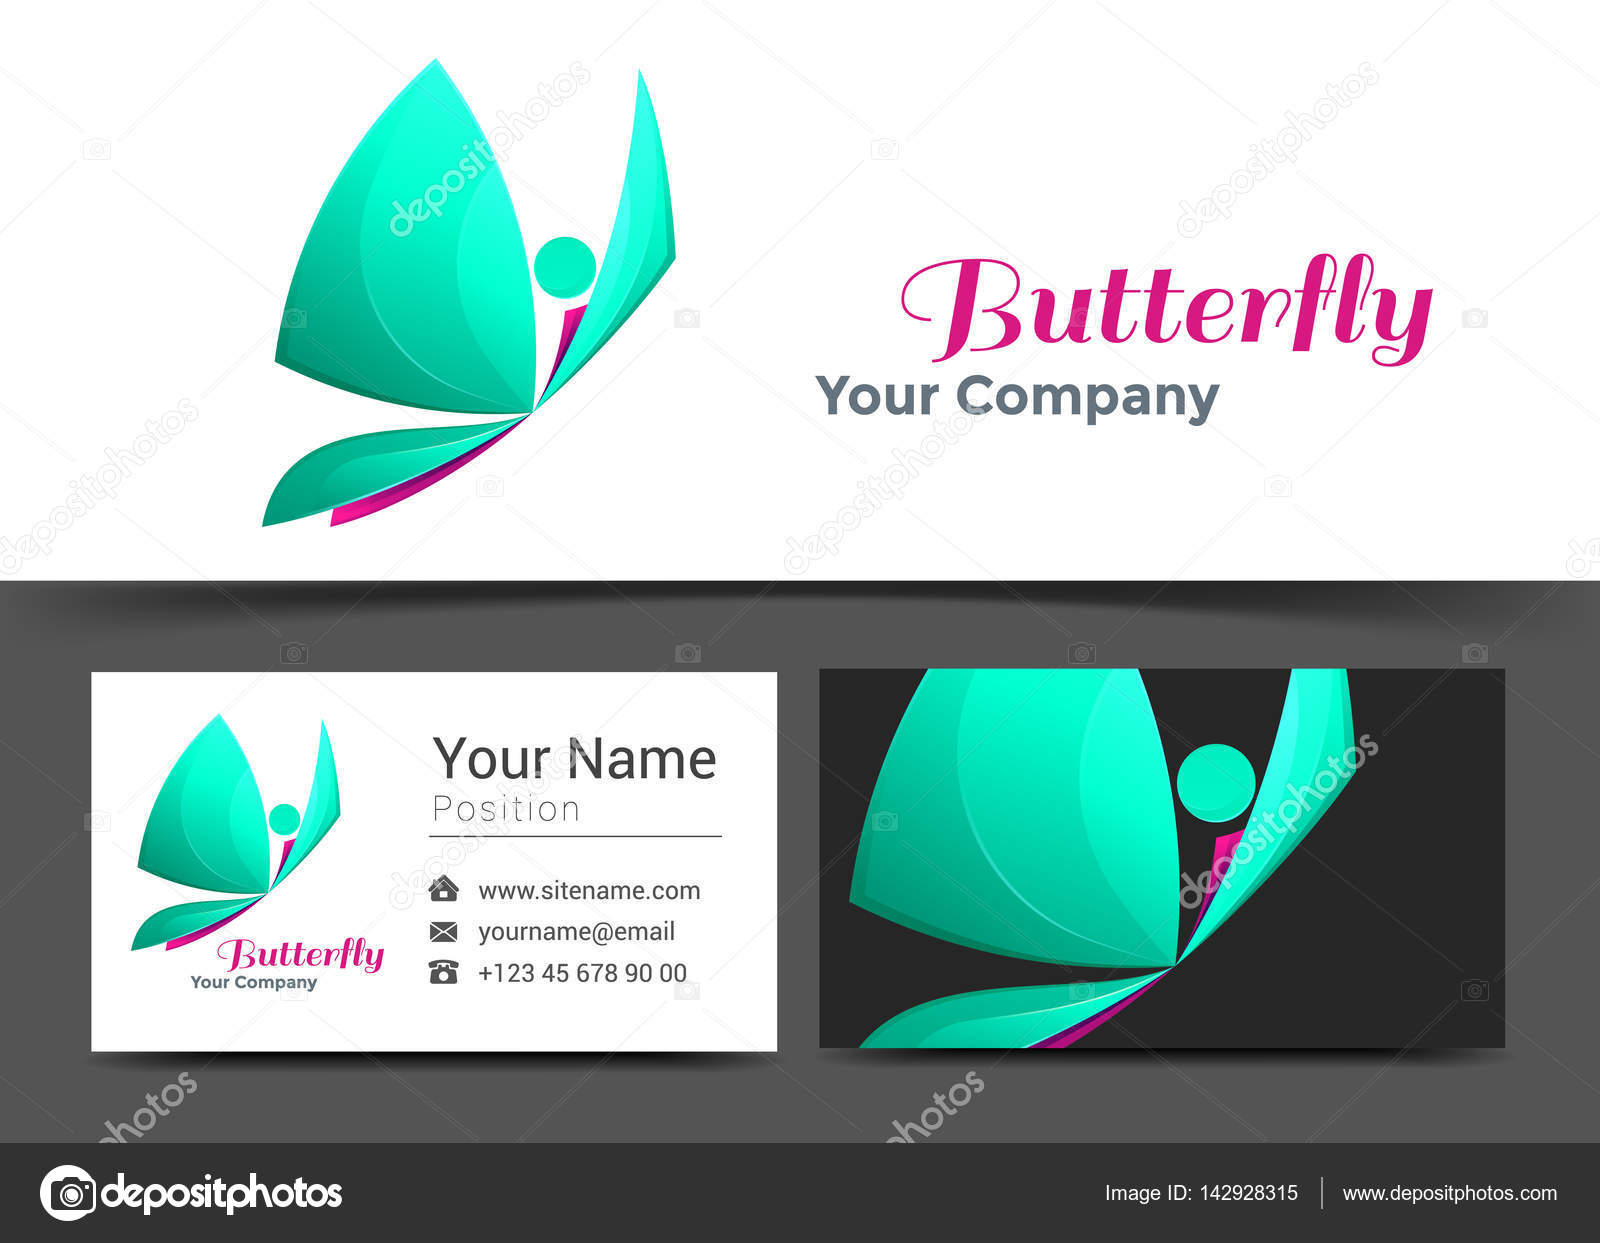 Butterfly corporate logo and business card sign template creative butterfly corporate logo and business card sign template creative design with colorful logotype visual identity magicingreecefo Images